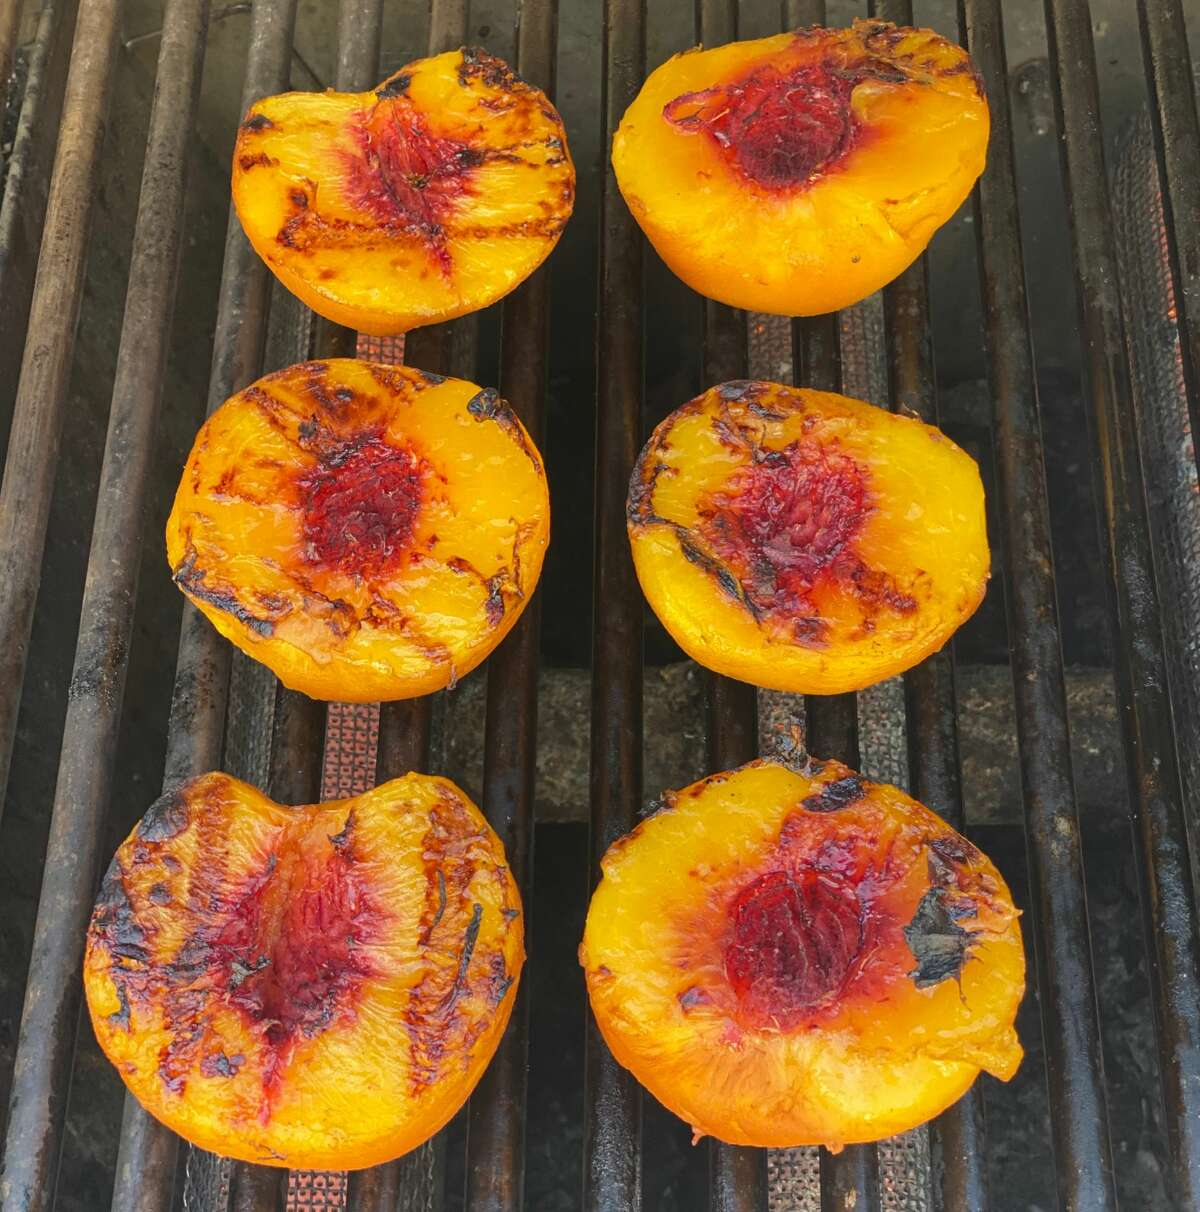 Grilling fresh, juicy summery peaches caramelizes the sugars in the ripe fruit. (Susie Davidson Powell/for the Times Union)